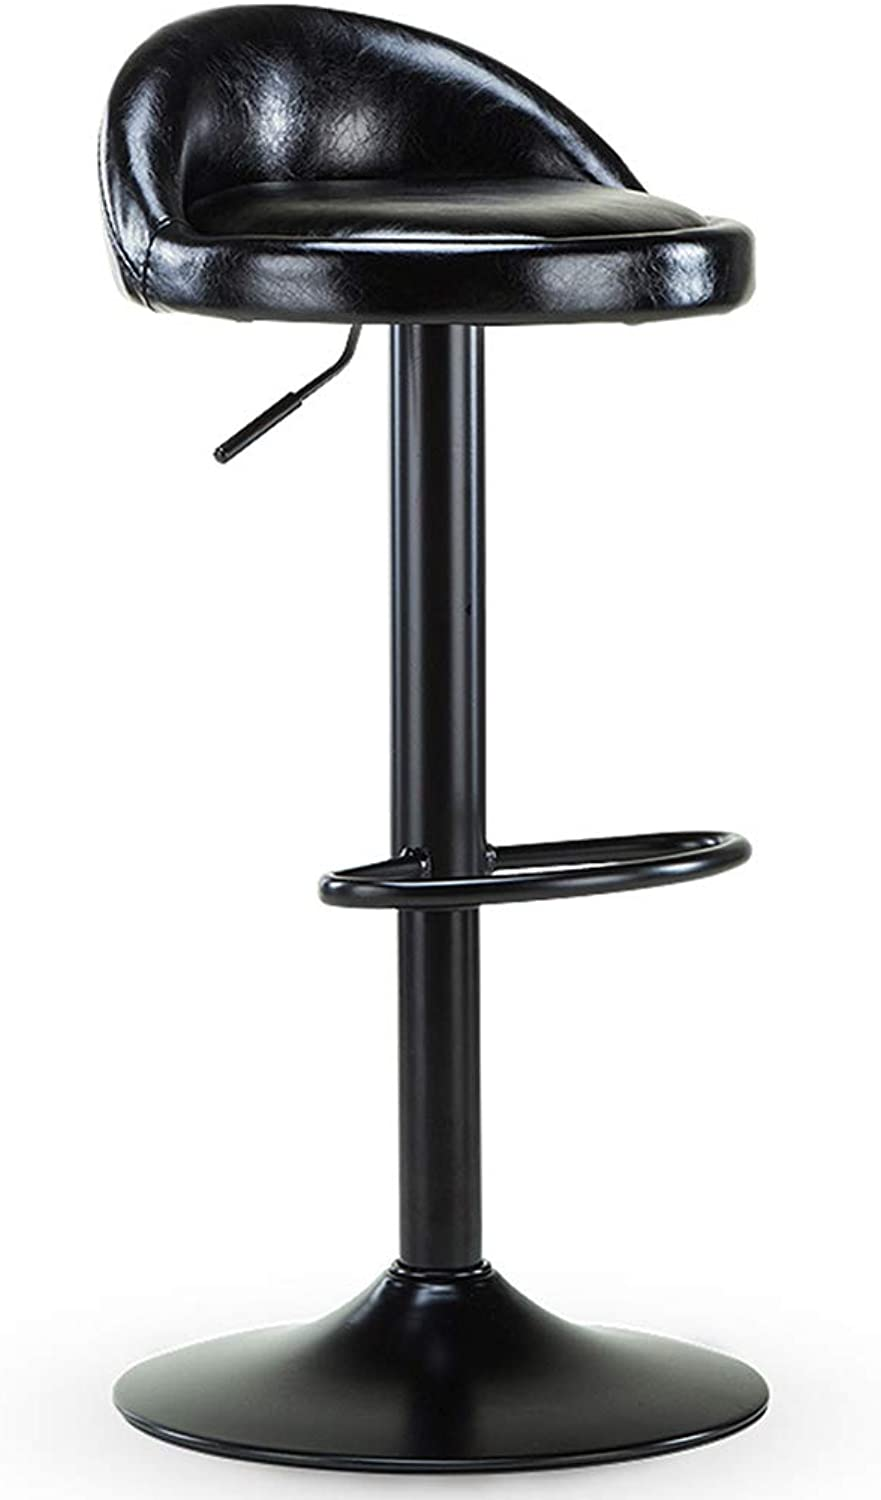 Barstools - Kitchen Breakfast Chair Leather Adjustable Gas Lift Chrome Footstool and Bar Counter Or Home Base 0506A (color   Black, Size   41.5cm)